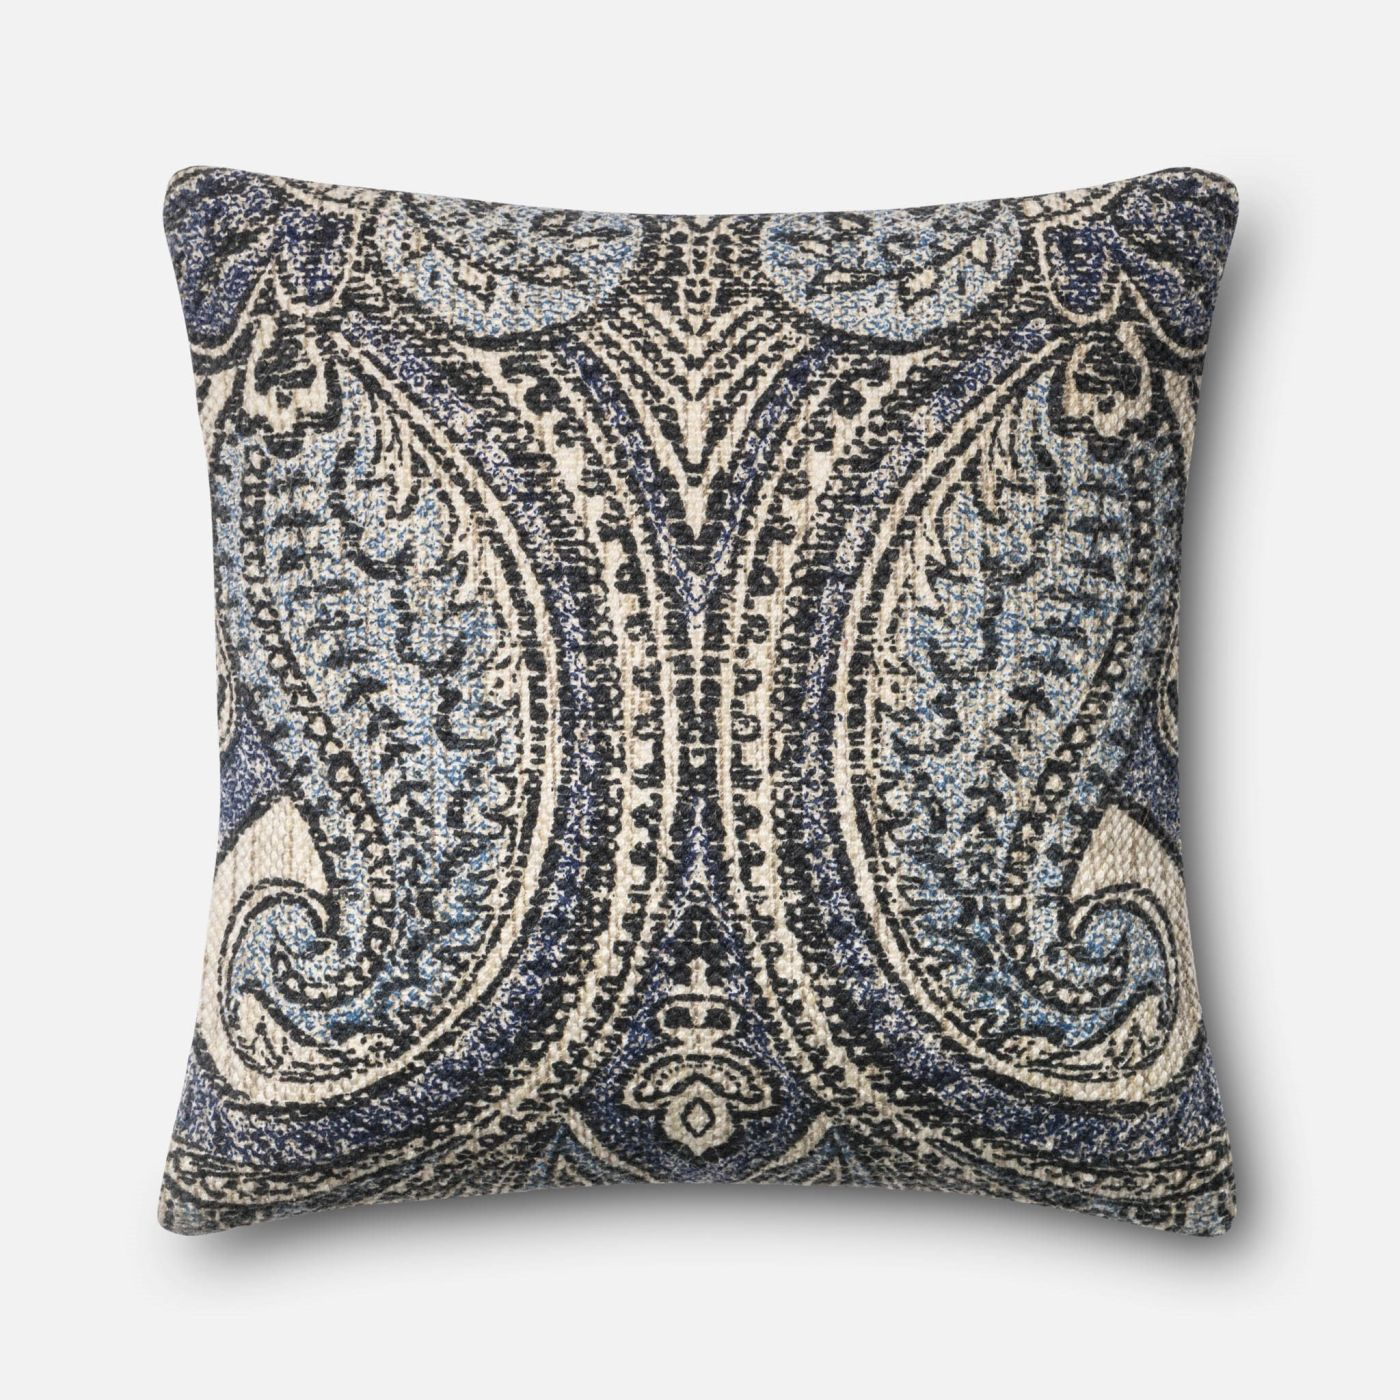 Ivory Decorative Throw Pillows : Loloi Rugs Loloi Blue / Ivory Decorative Throw Pillow (P0363) DSETP0363BBIVPIL3. Only $89.00 at ...